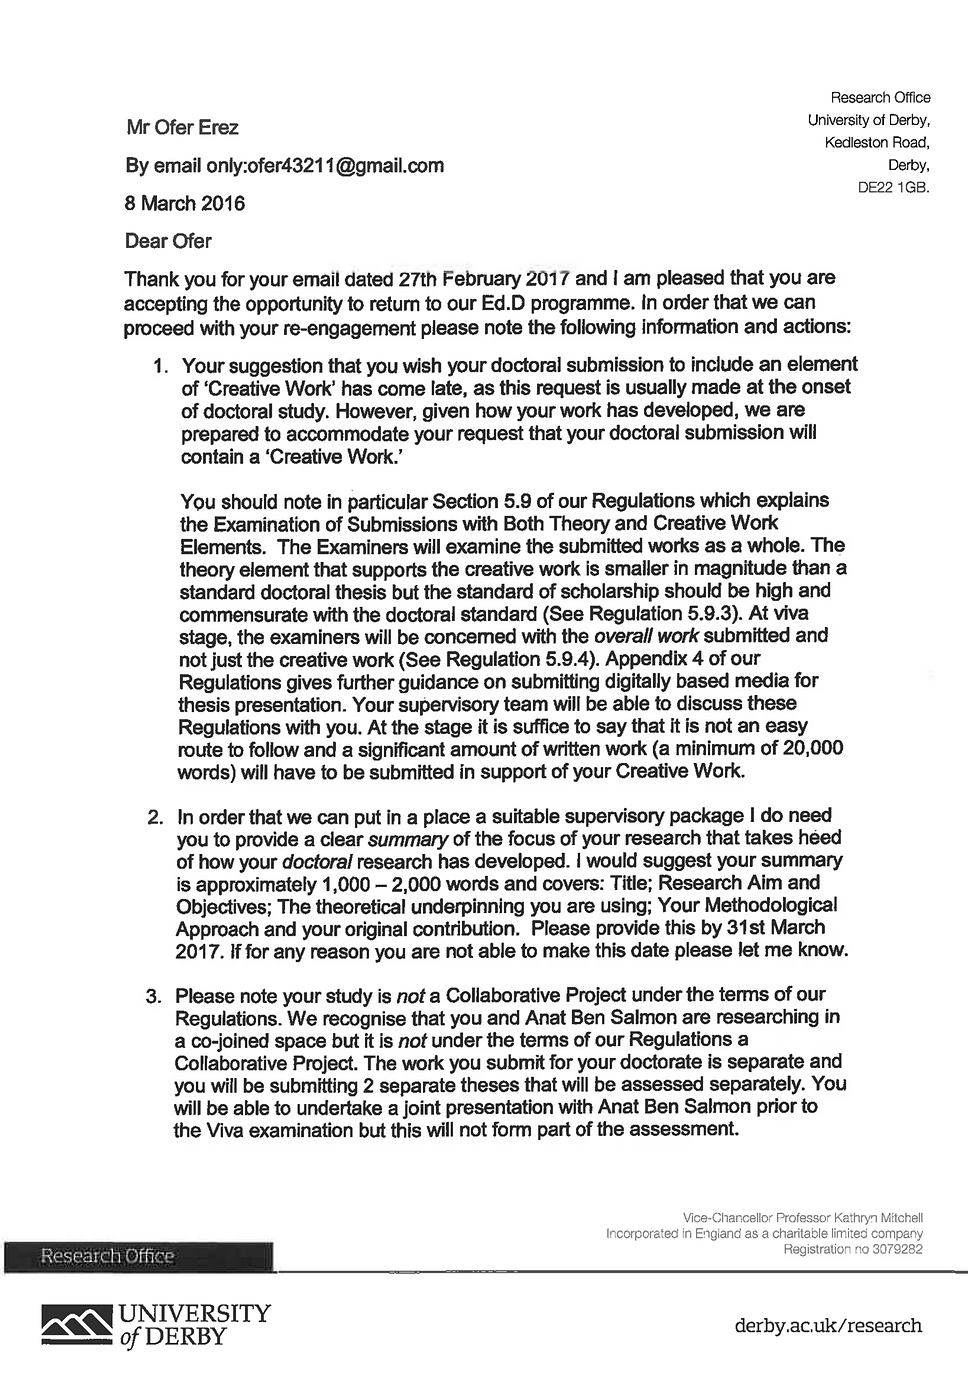 Letter to Ofer Erez 06-03-17_Page_1.png